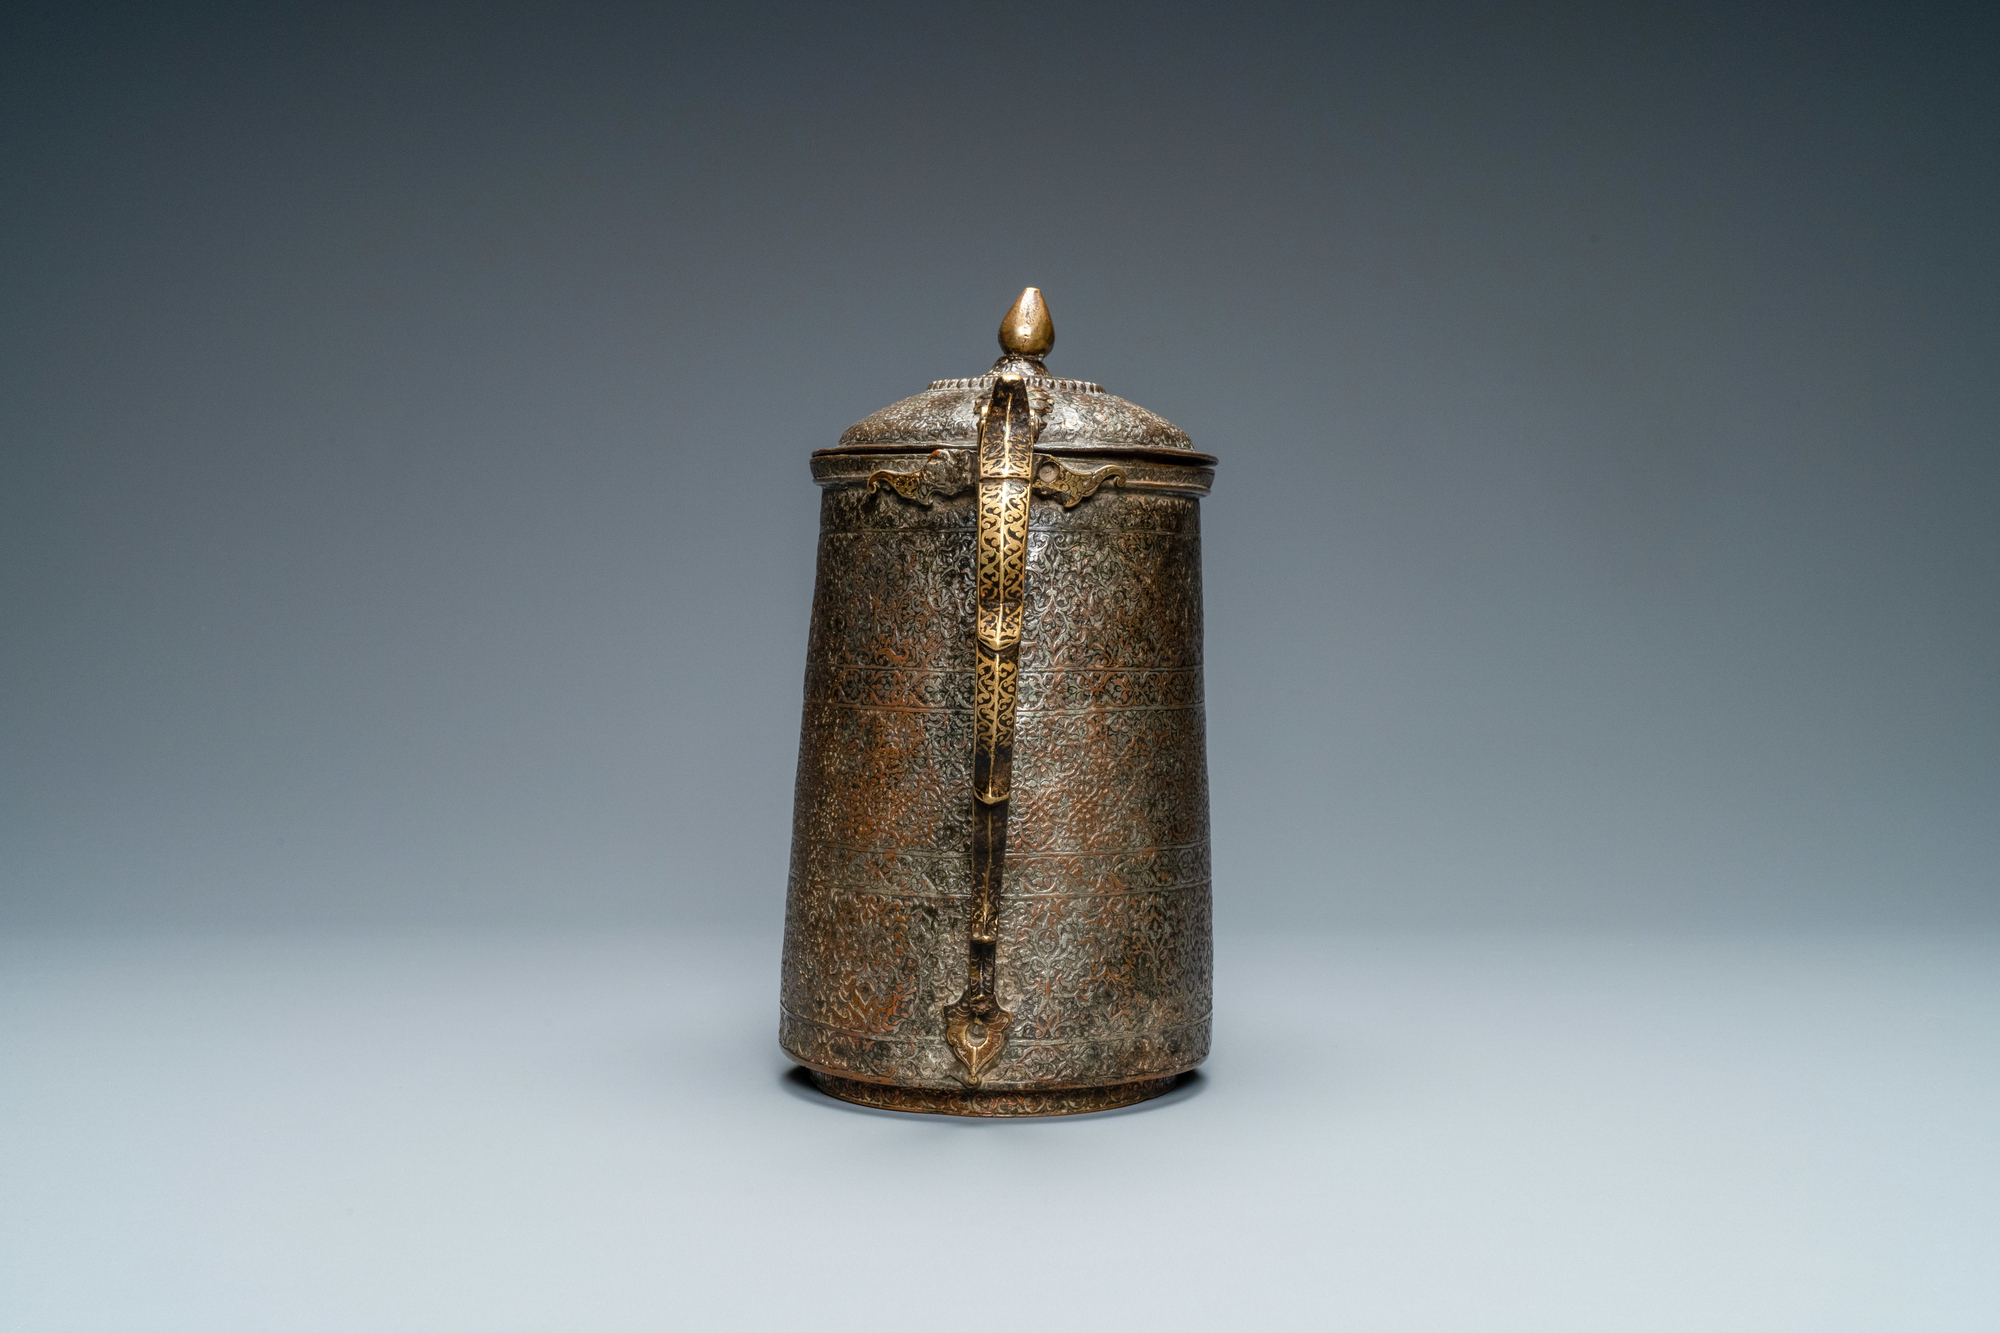 A Safavid parcel-gilt and tinned copper mug and cover, Persia, 17/18th C. - Image 2 of 7